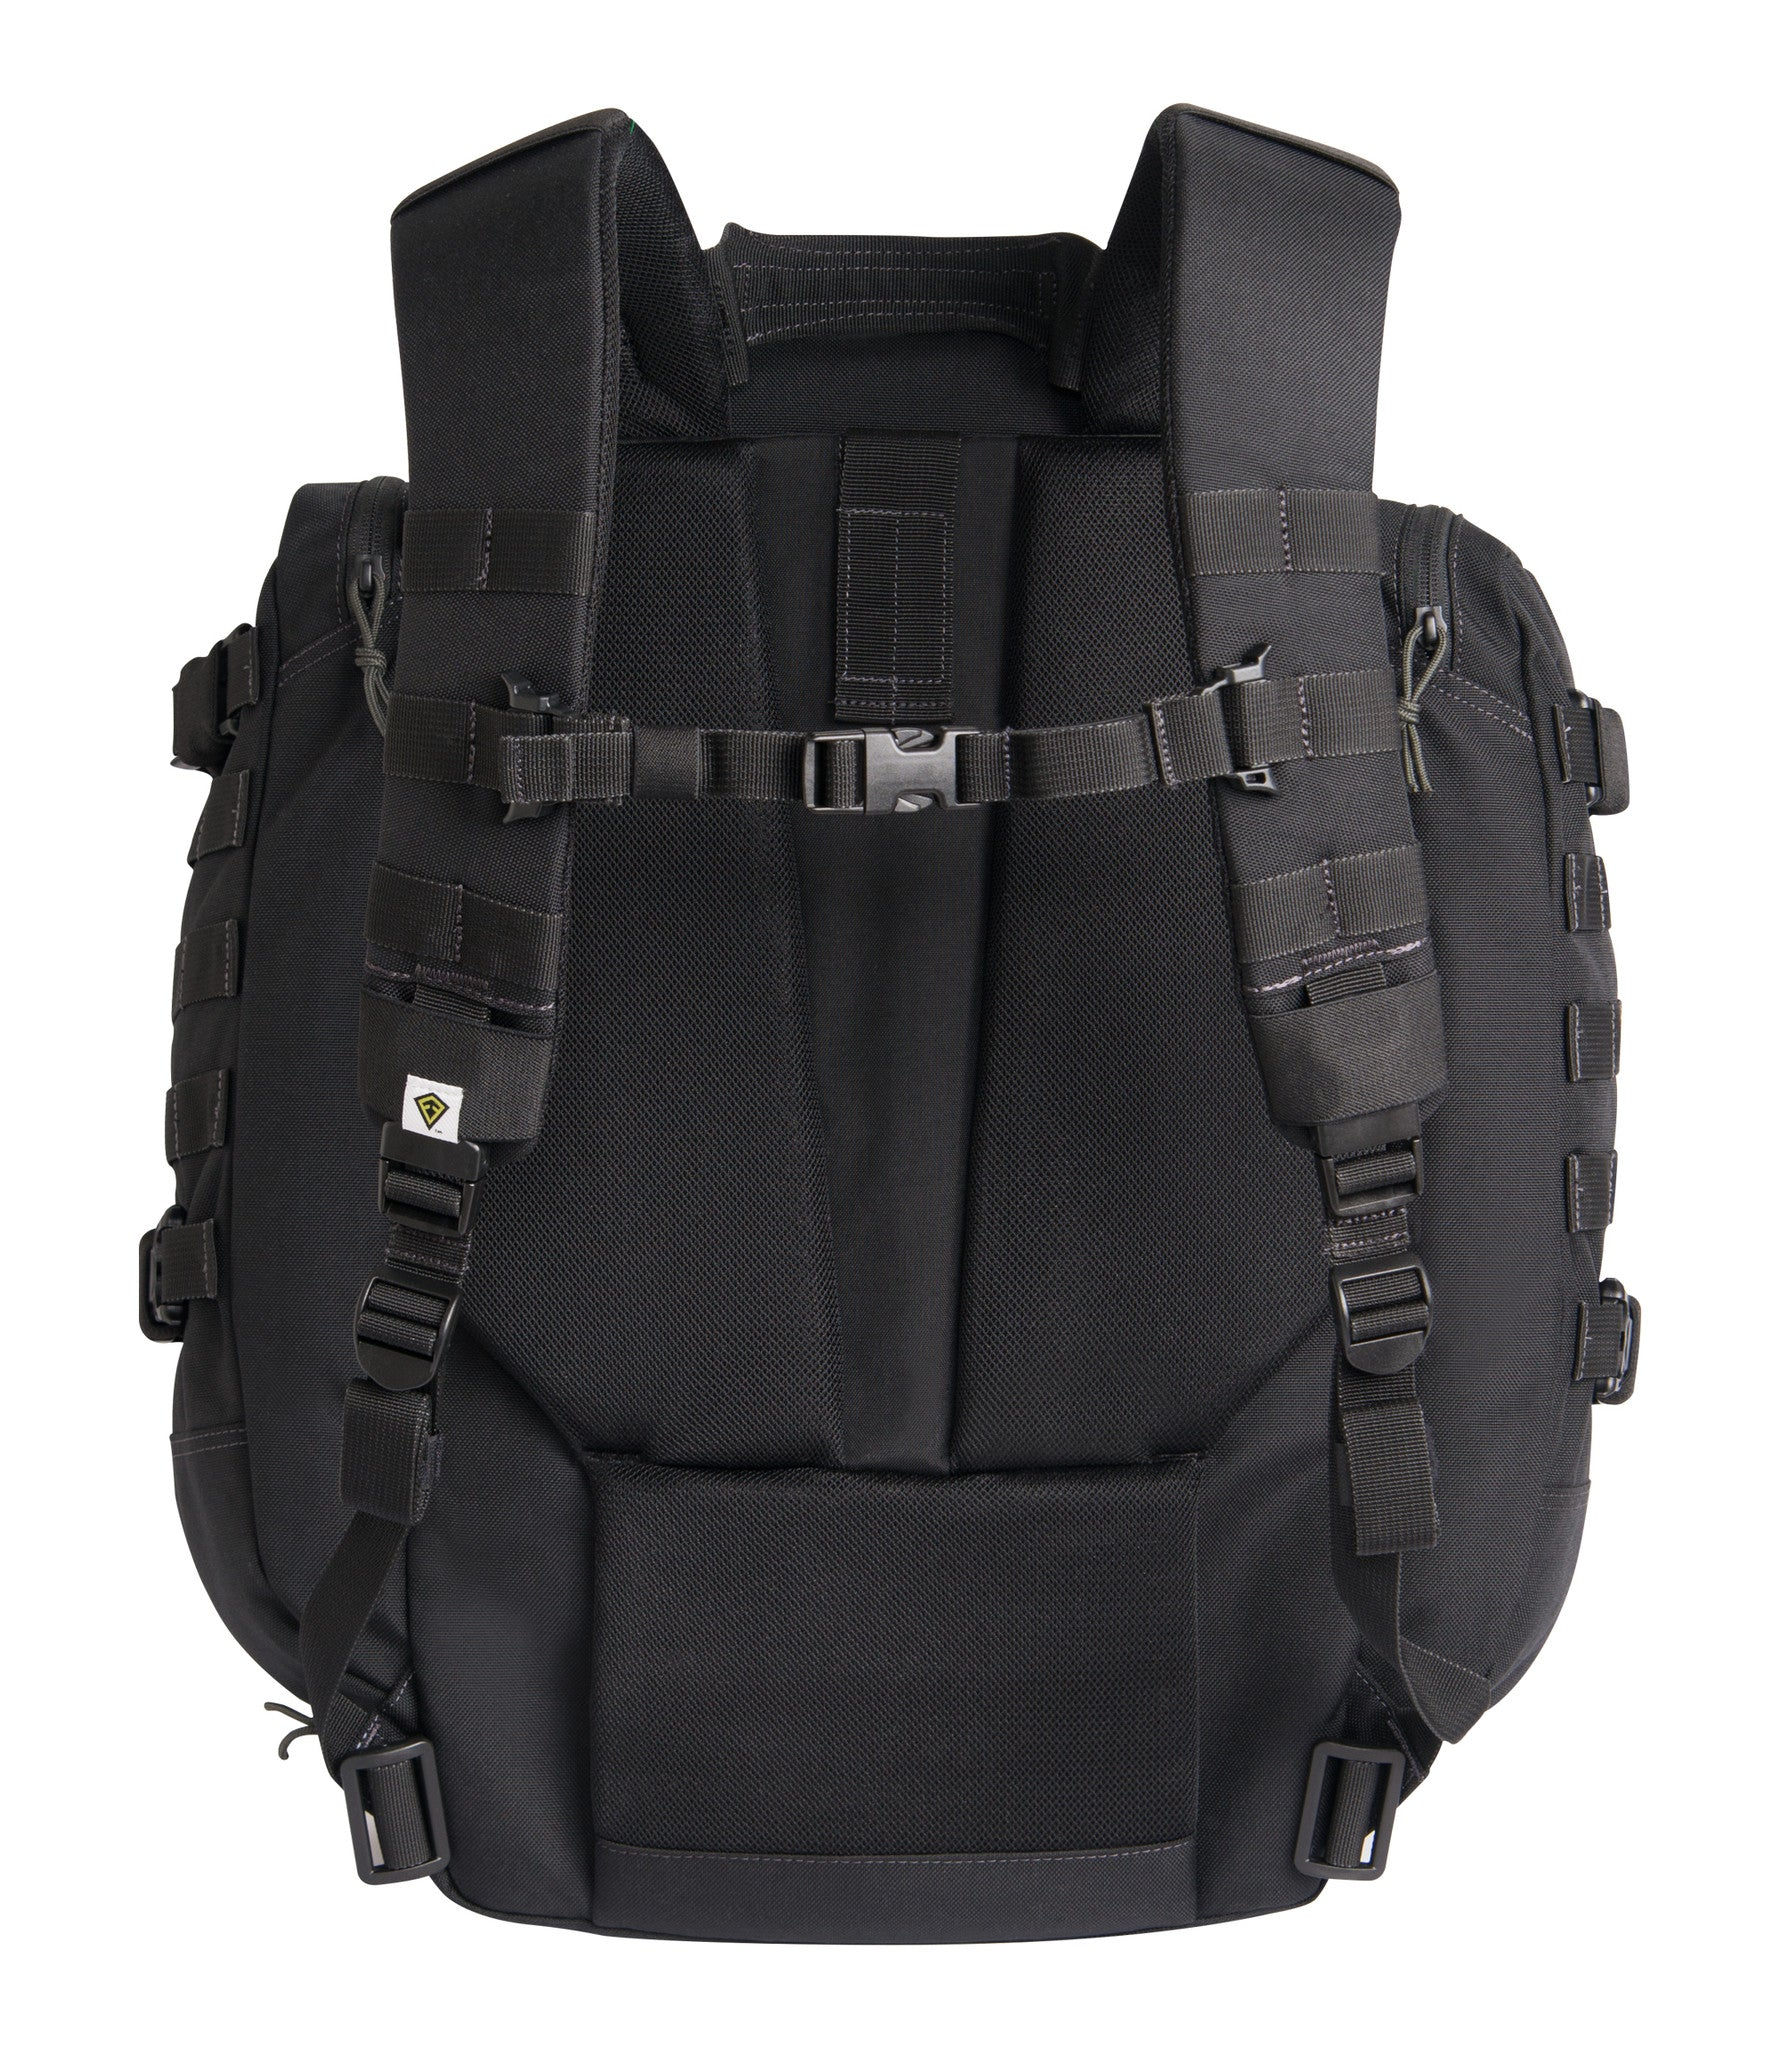 9a58f371a2 Specialist 3-Day Backpack